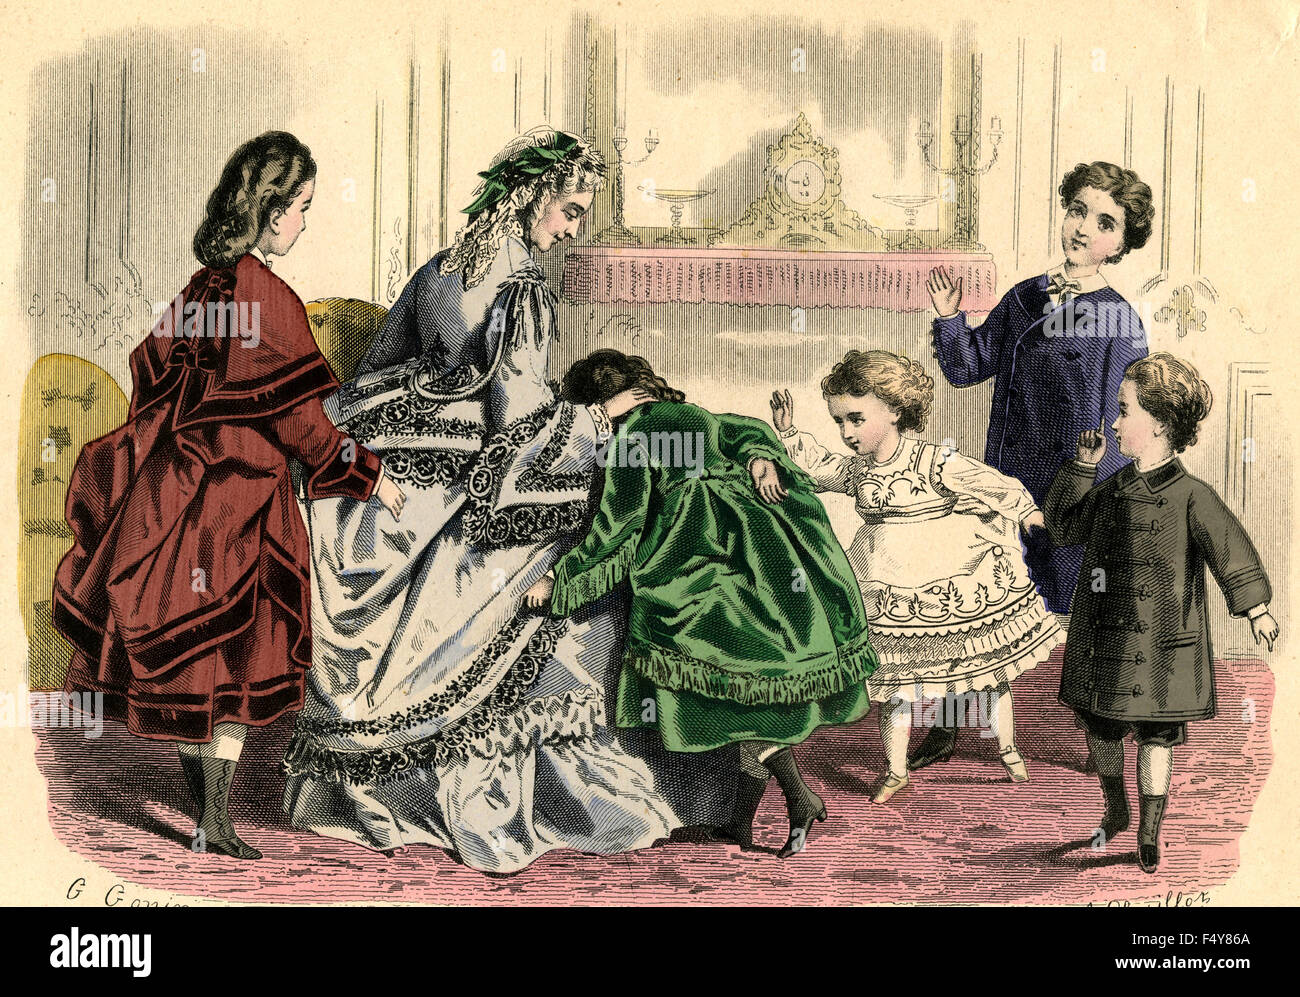 Fashion illustration: French woman at the end of 1800 - Stock Image